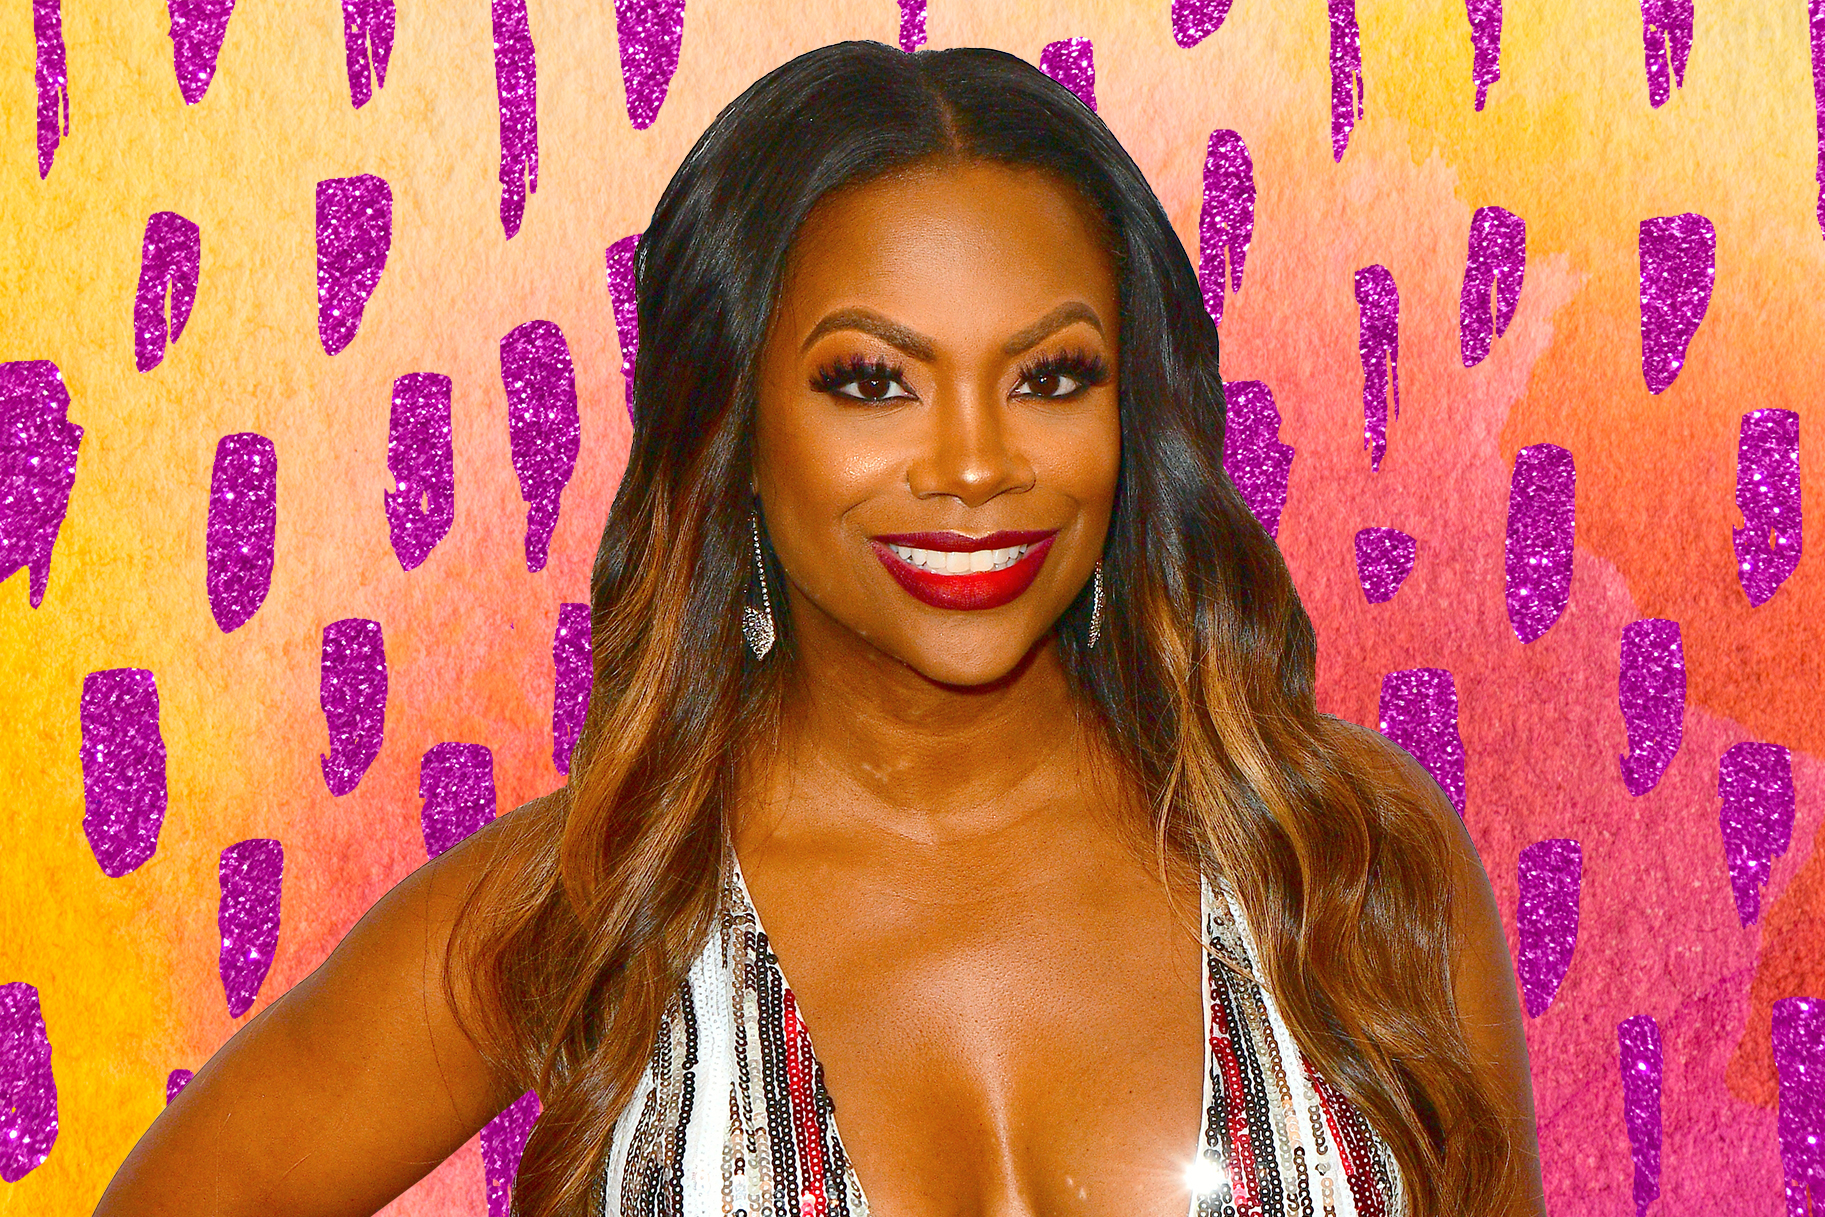 kandi-burruss-shares-this-motivational-video-and-has-fans-in-awe